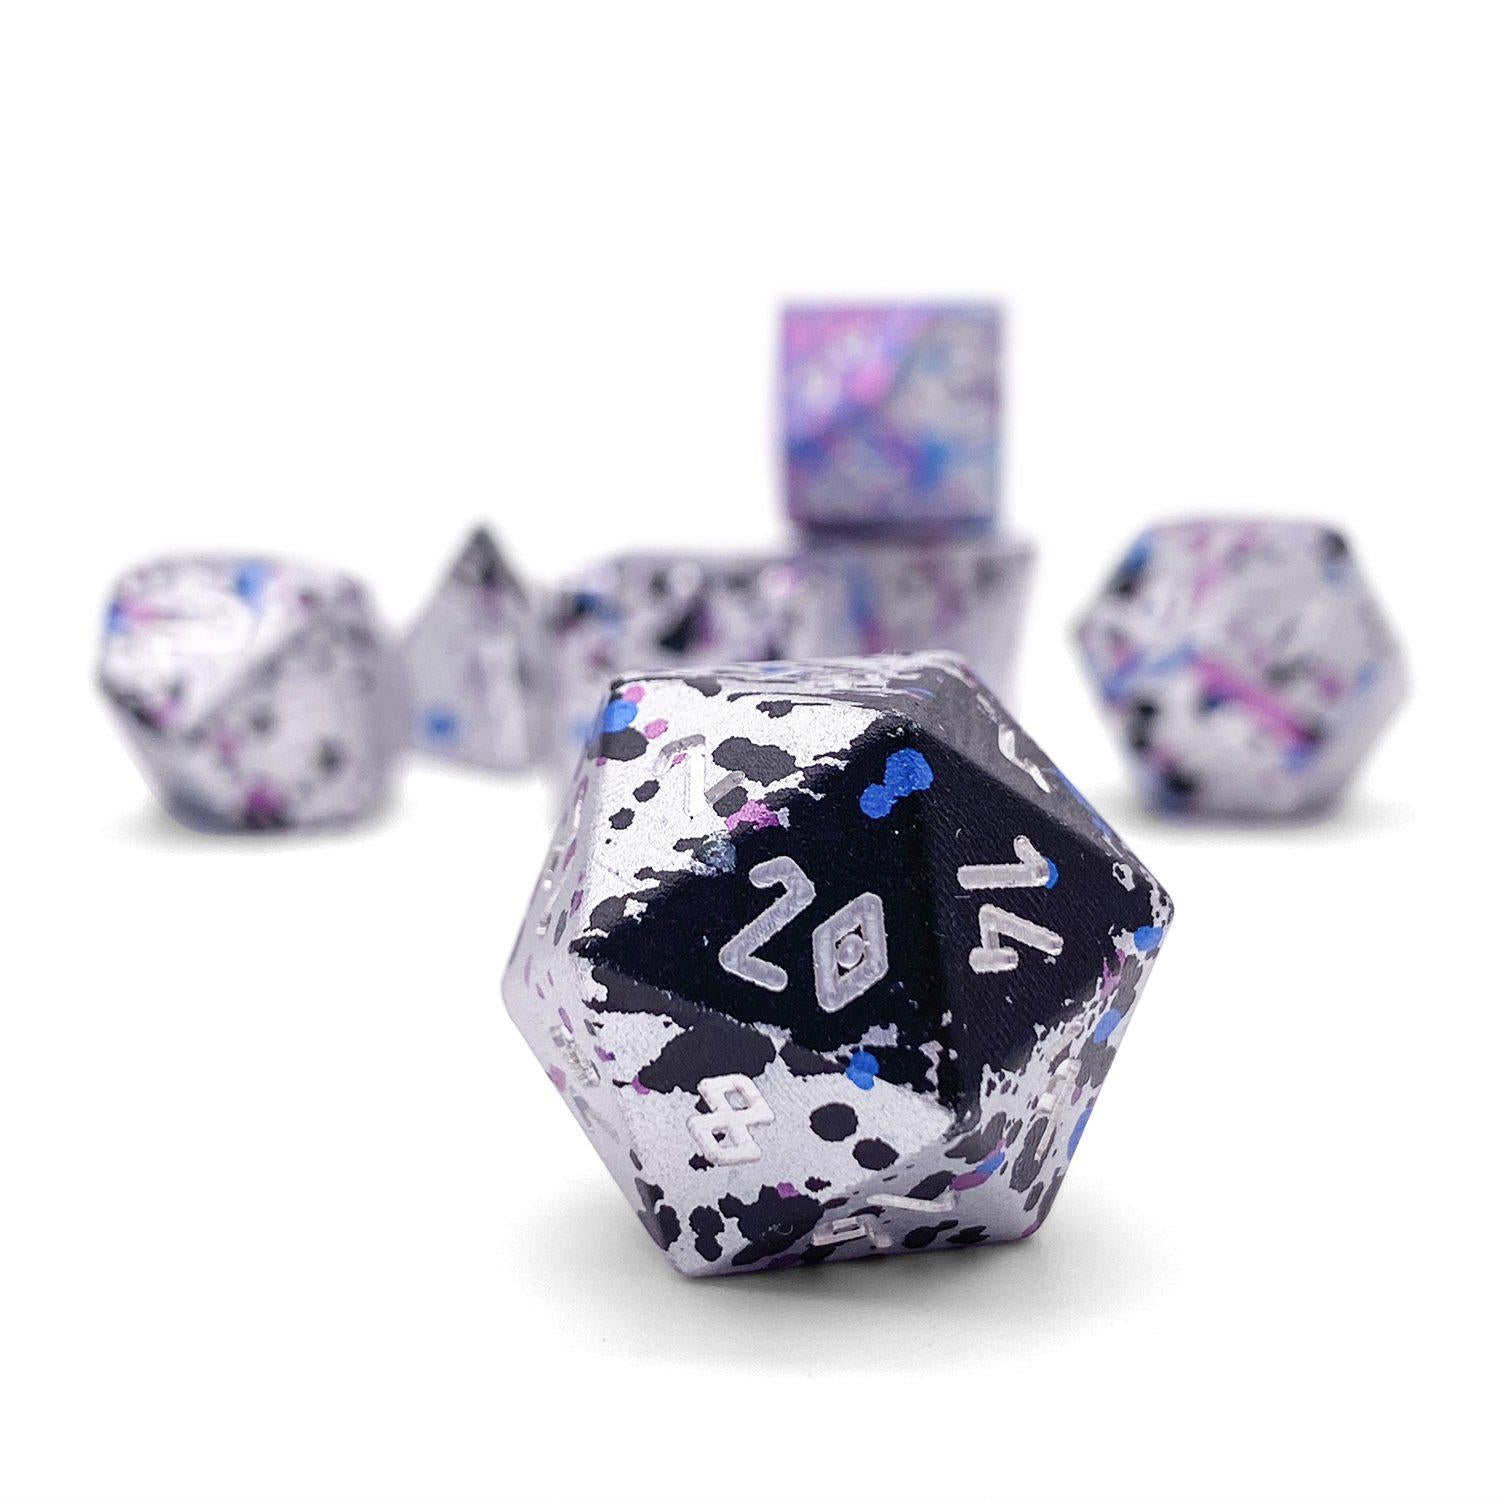 Magic Missile - Wondrous Dice Set of 7 RPG Dice by Norse Foundry Precision Polyhedral Dice Set